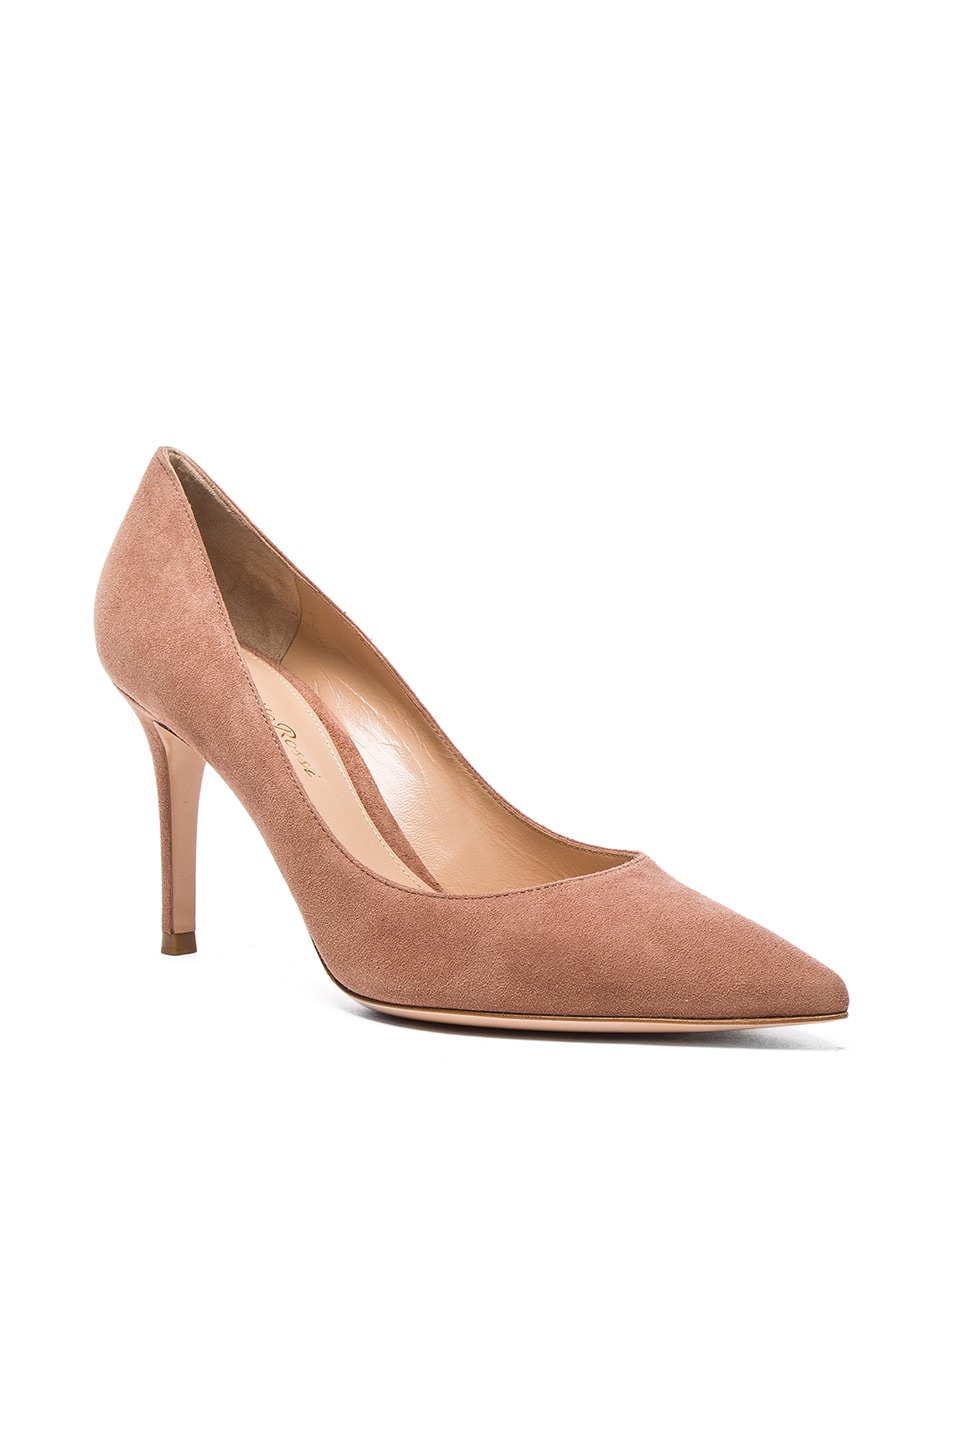 Image 2 of Gianvito Rossi Suede Gianvito Heels in Praline